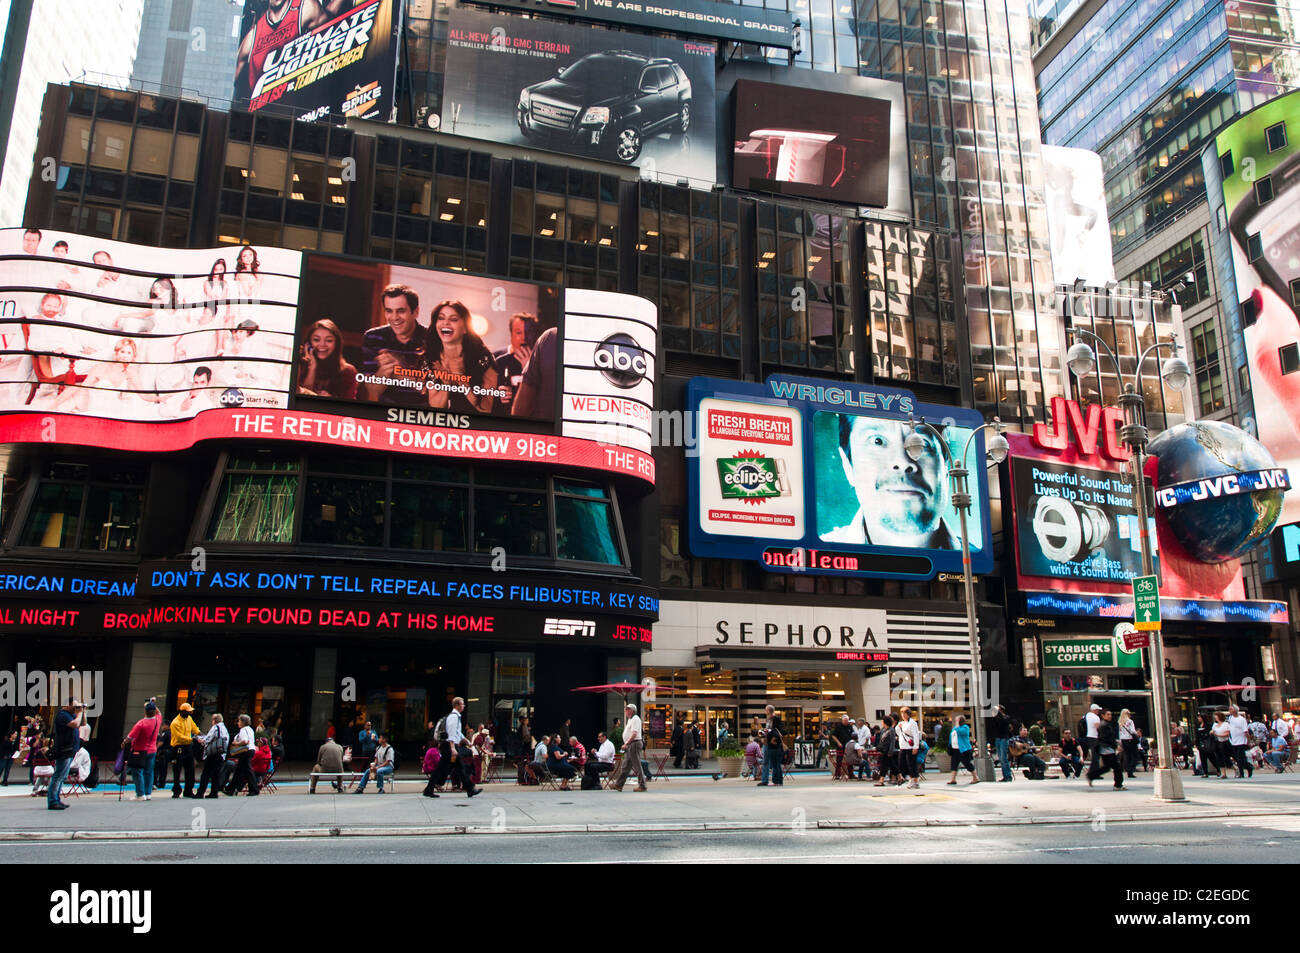 ernst young building at 5 times square with sephora jvc and stock photo 35970296 alamy. Black Bedroom Furniture Sets. Home Design Ideas